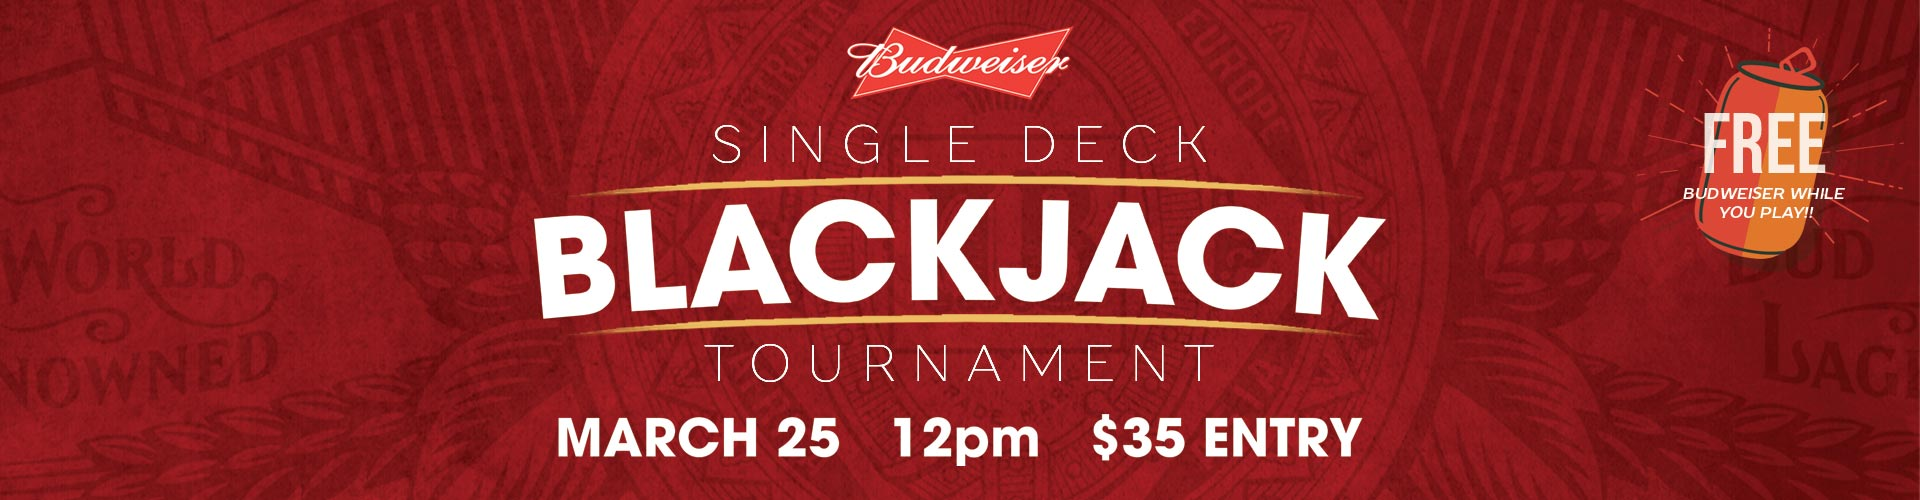 Budweiser Single Deck Blackjack Tournament